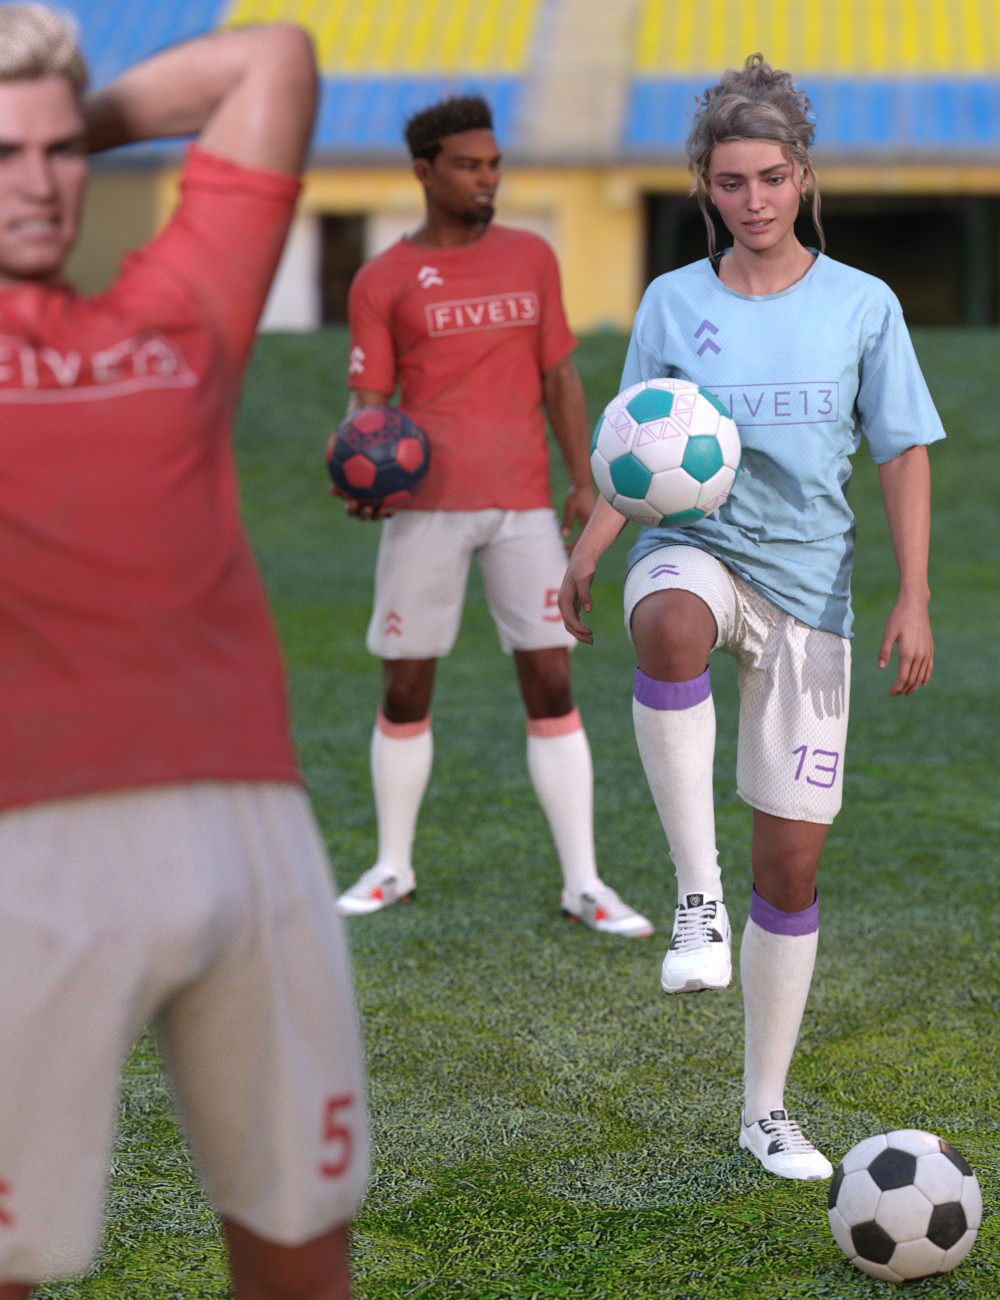 Kickabout Soccer Ball and Poses for Genesis 8 and 8.1 Male and Female by: Five13, 3D Models by Daz 3D